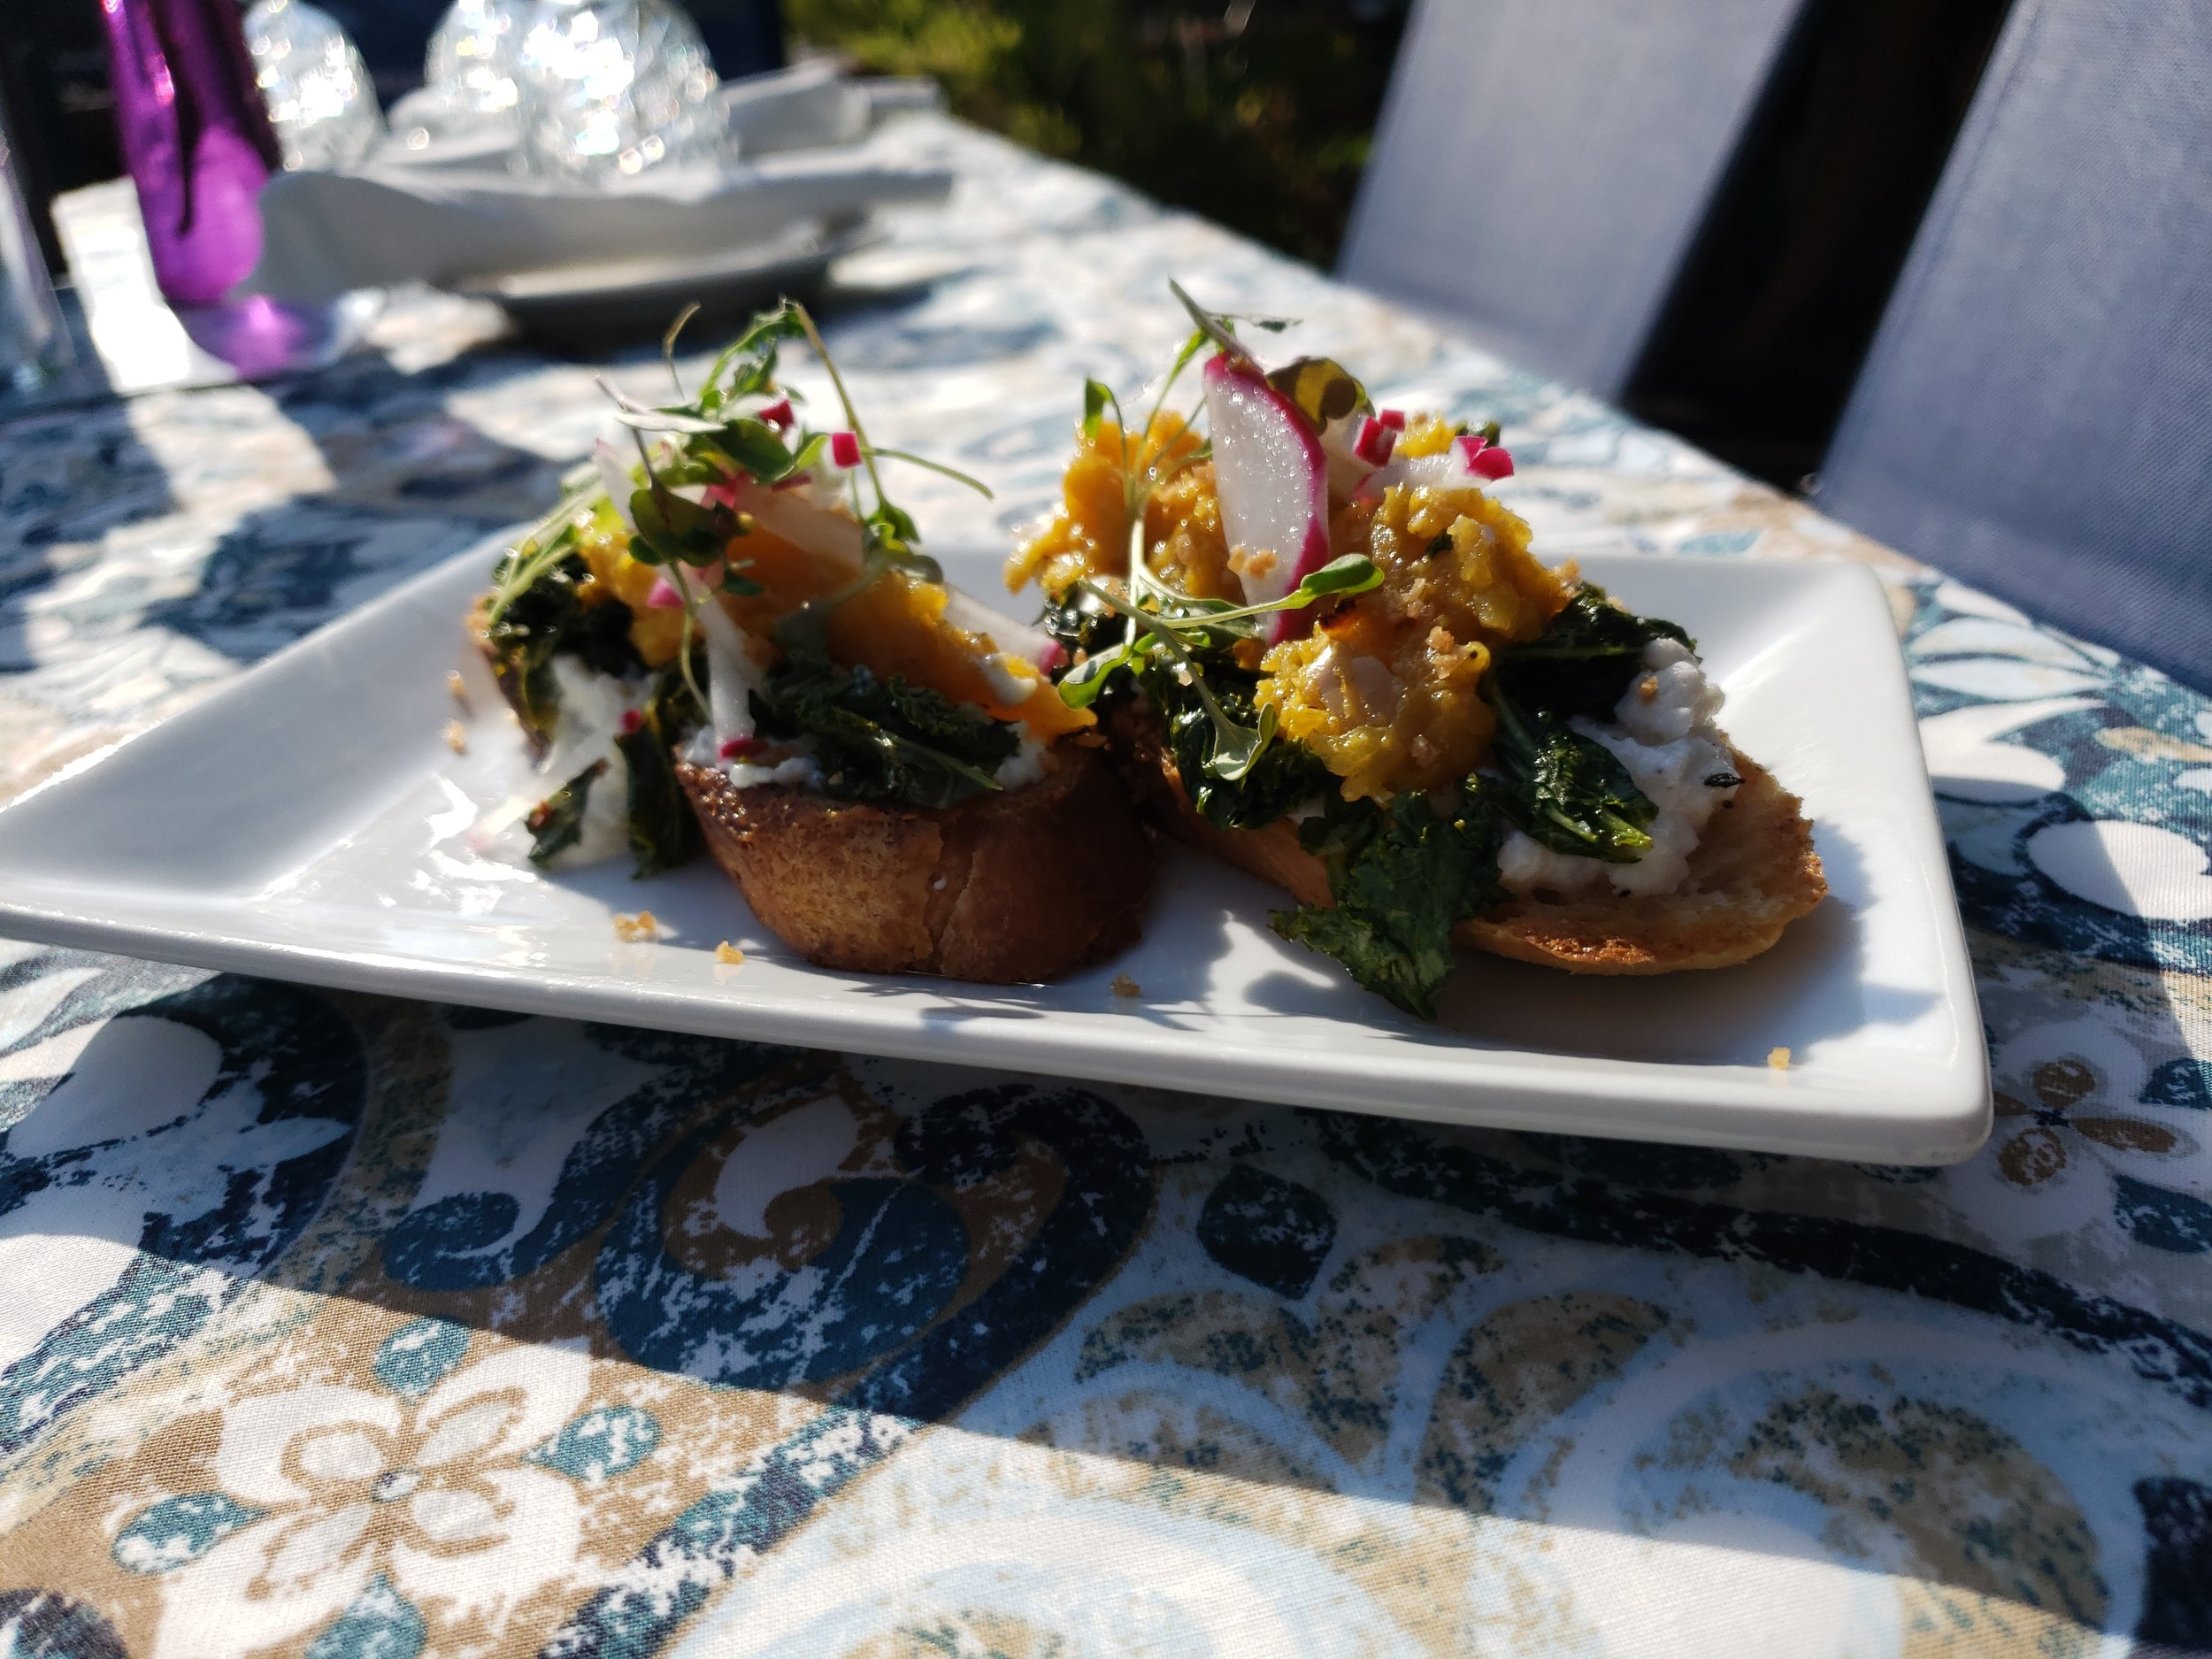 Past Special: Butternut Squash Crostinis